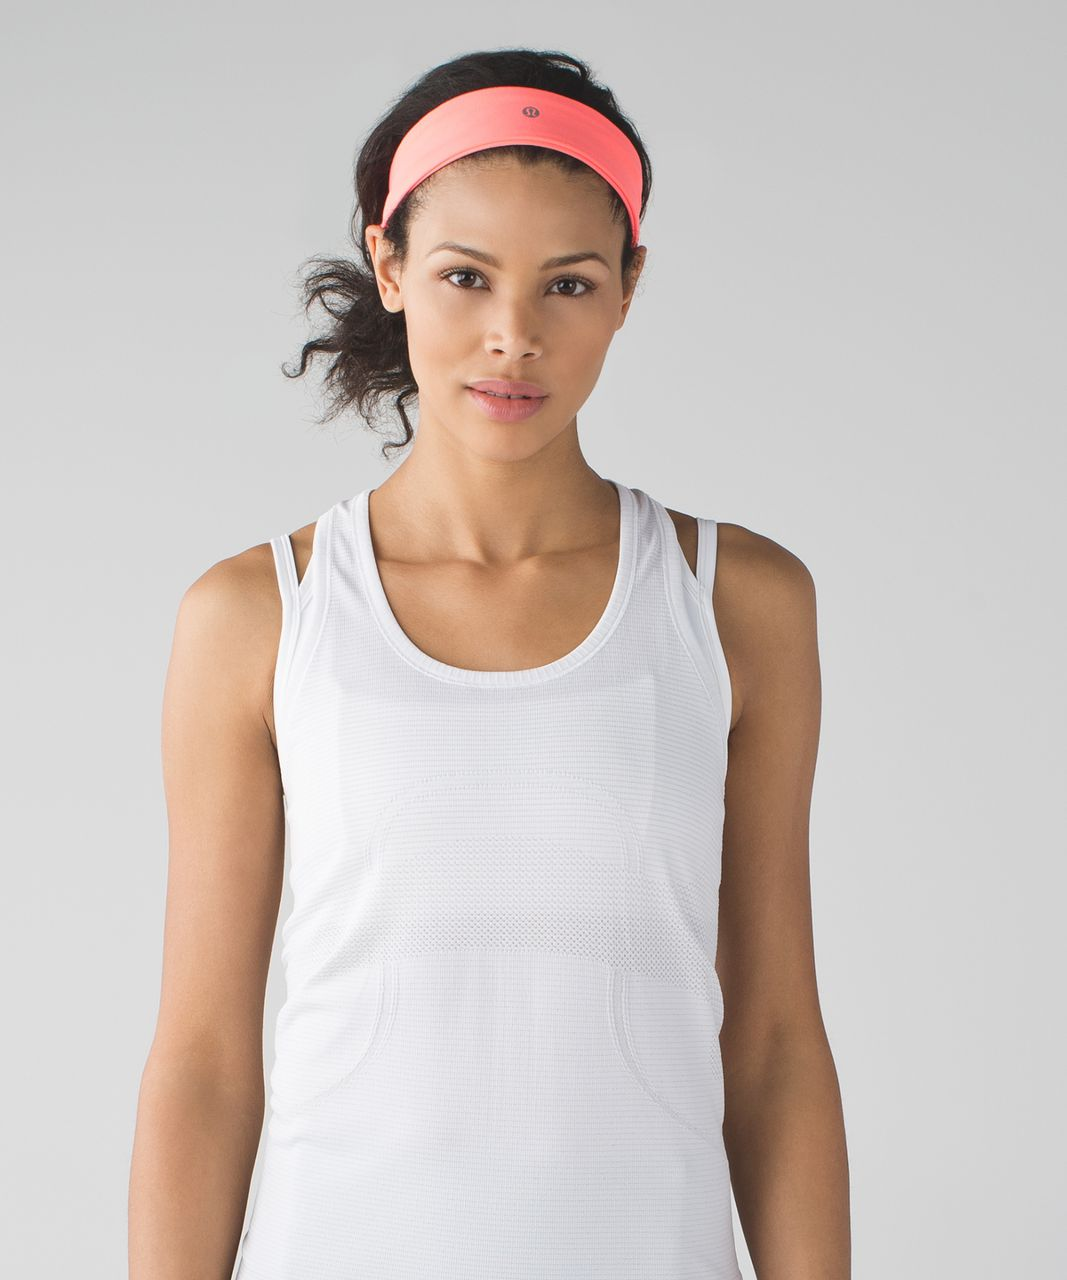 Lululemon Fly Away Tamer Headband II - Very Light Flare